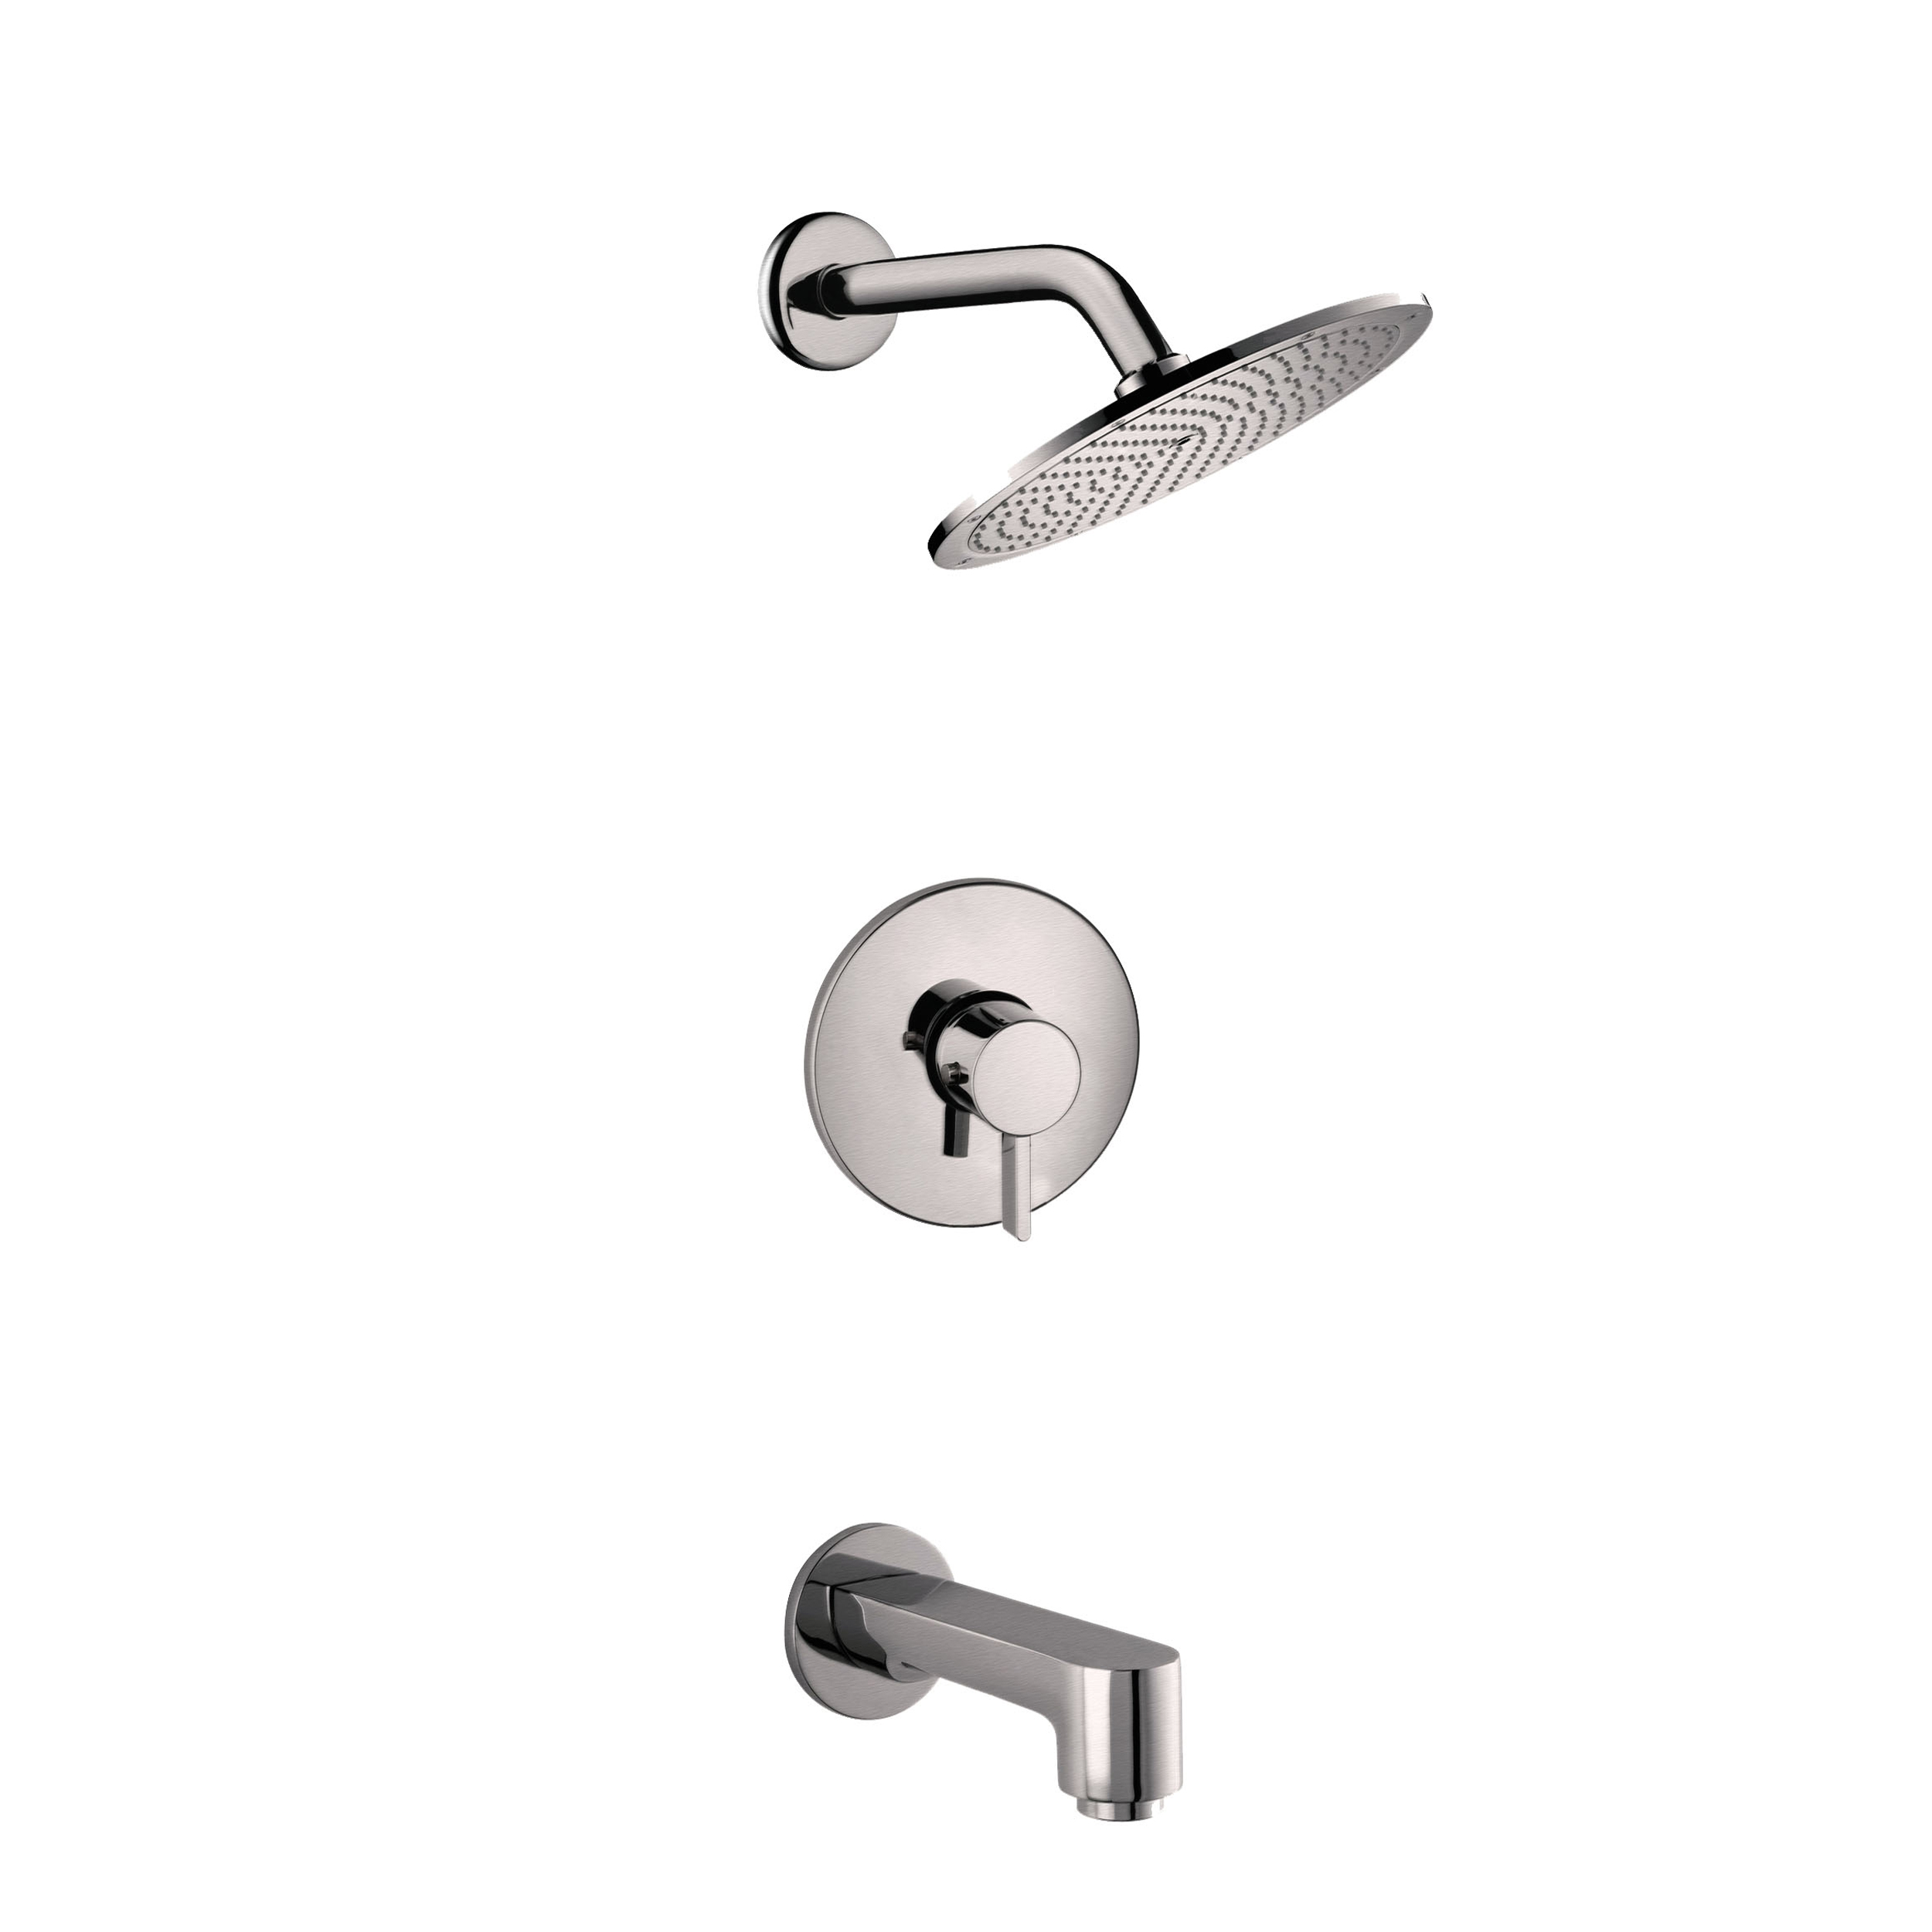 Eviva Lay Chrome Bathtub Faucet | Decors US